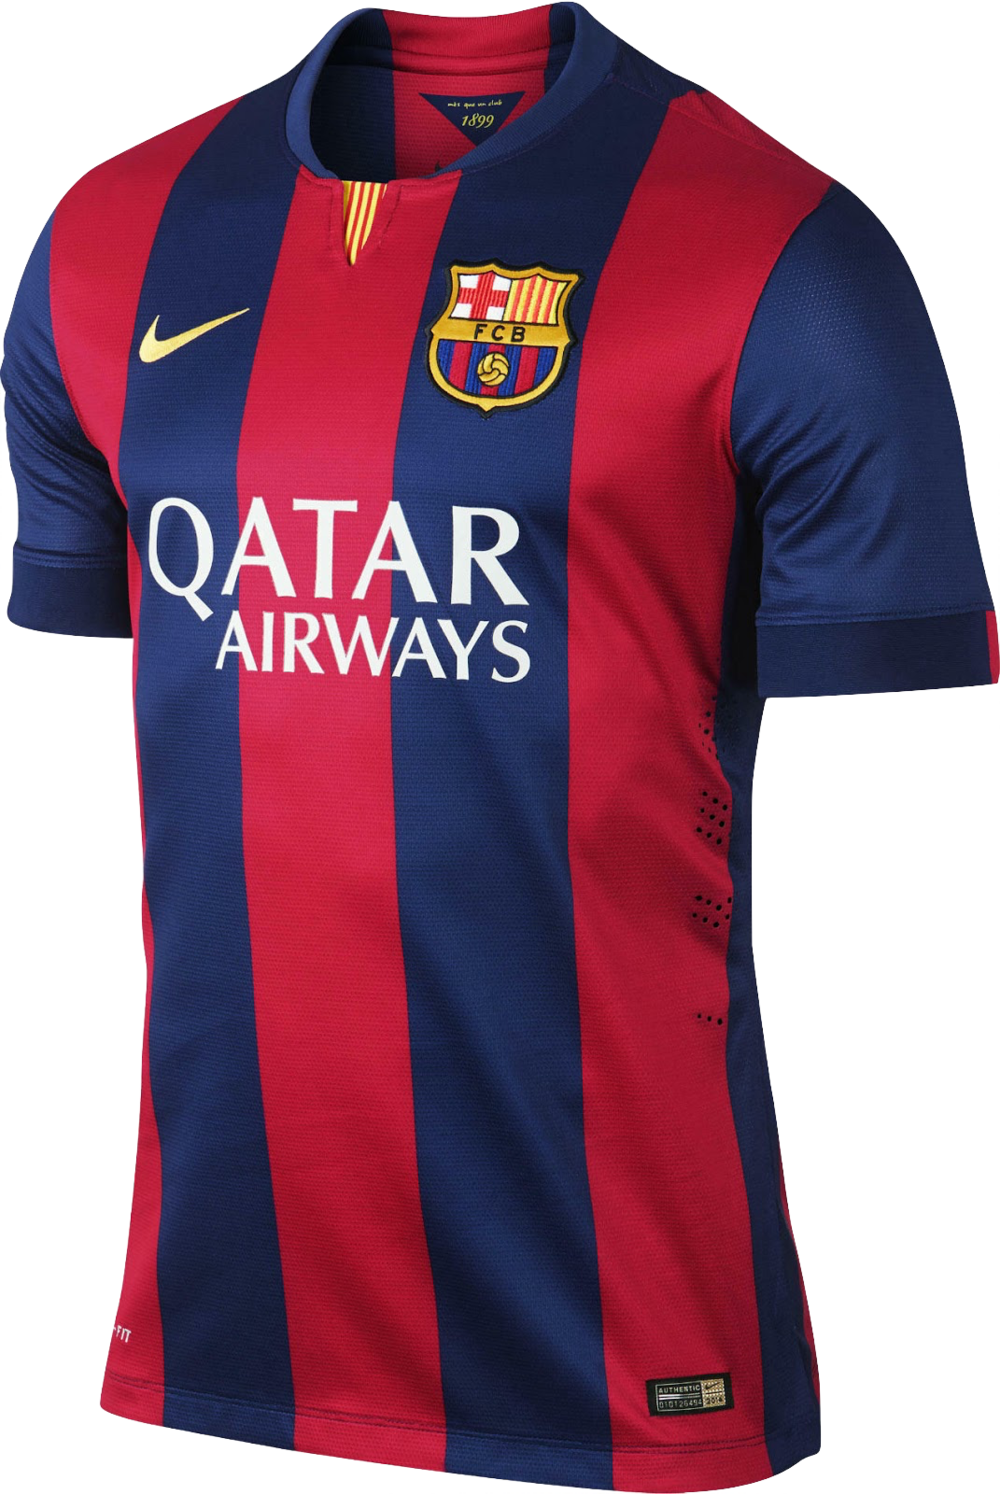 Nike Barcelona Jersey  - 5,000 PHP